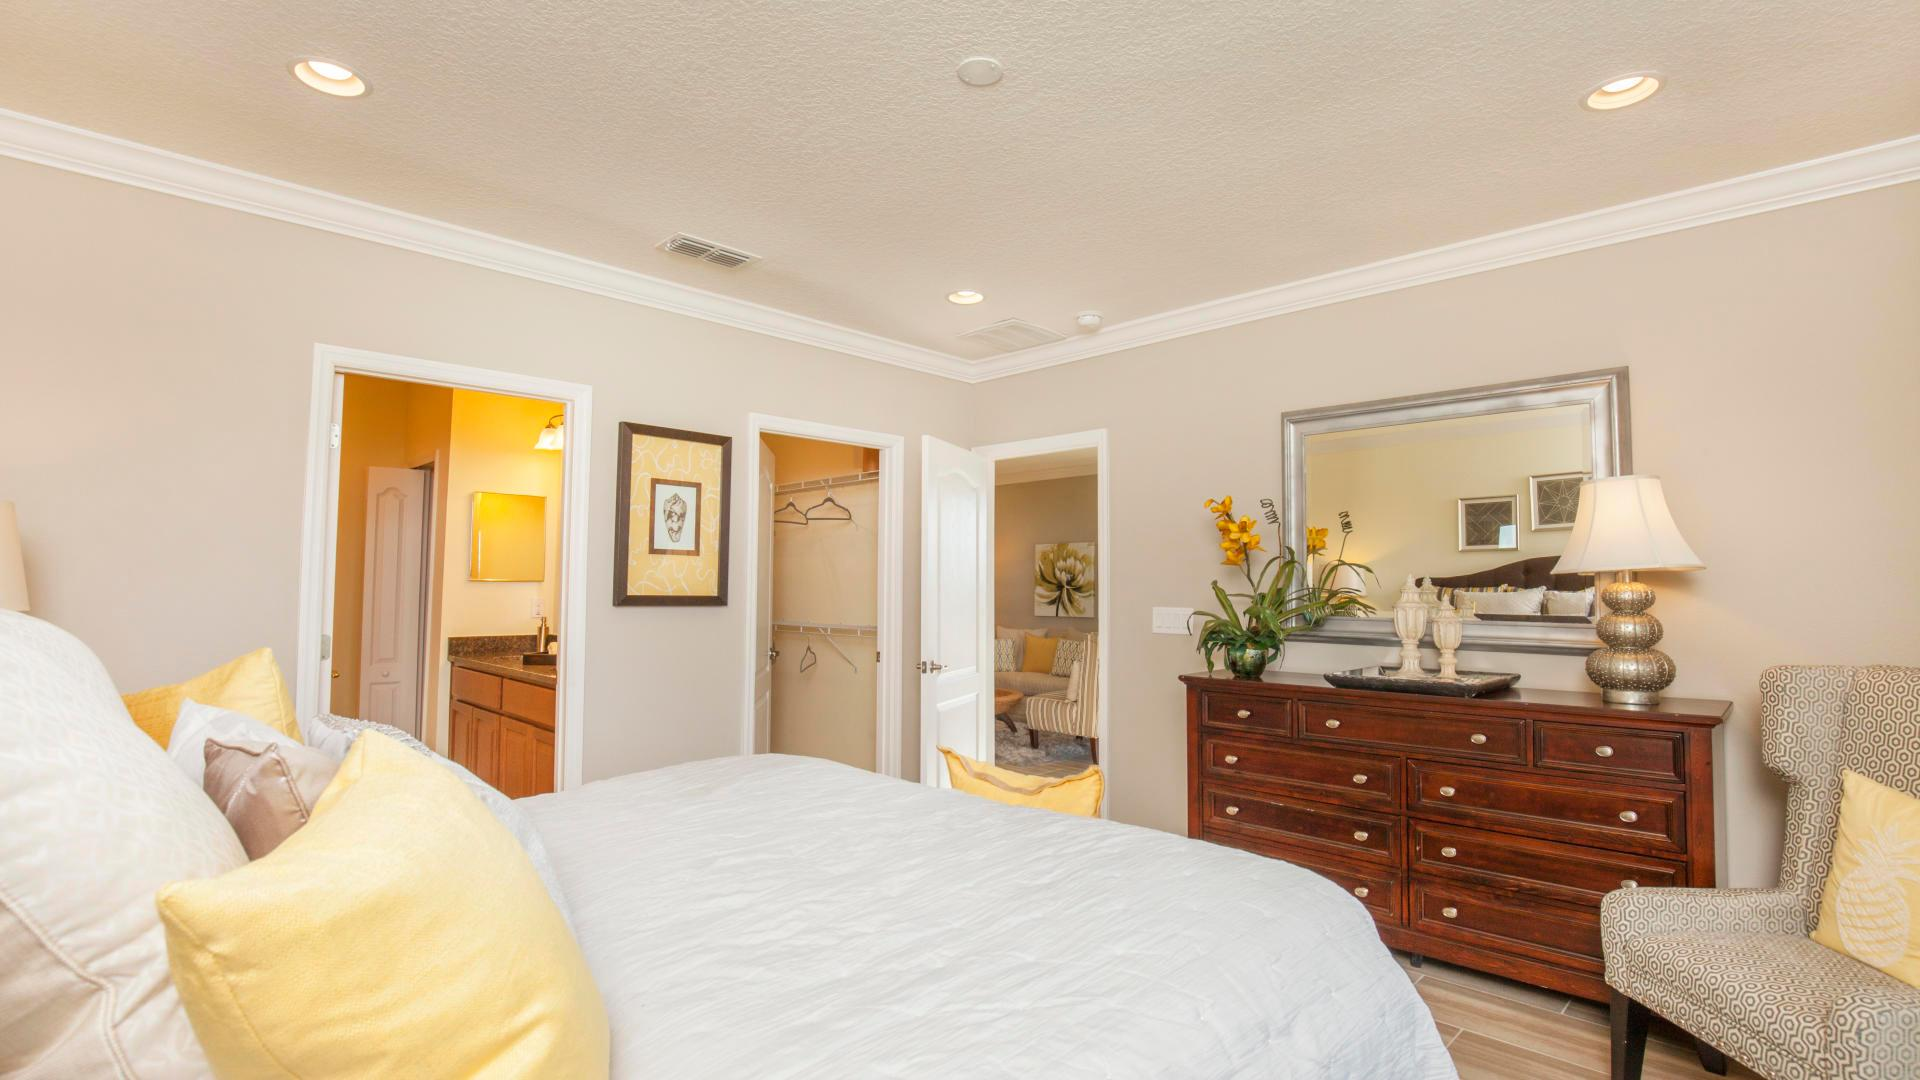 Bedroom featured in the Hibiscus By Maronda Homes in Indian River County, FL